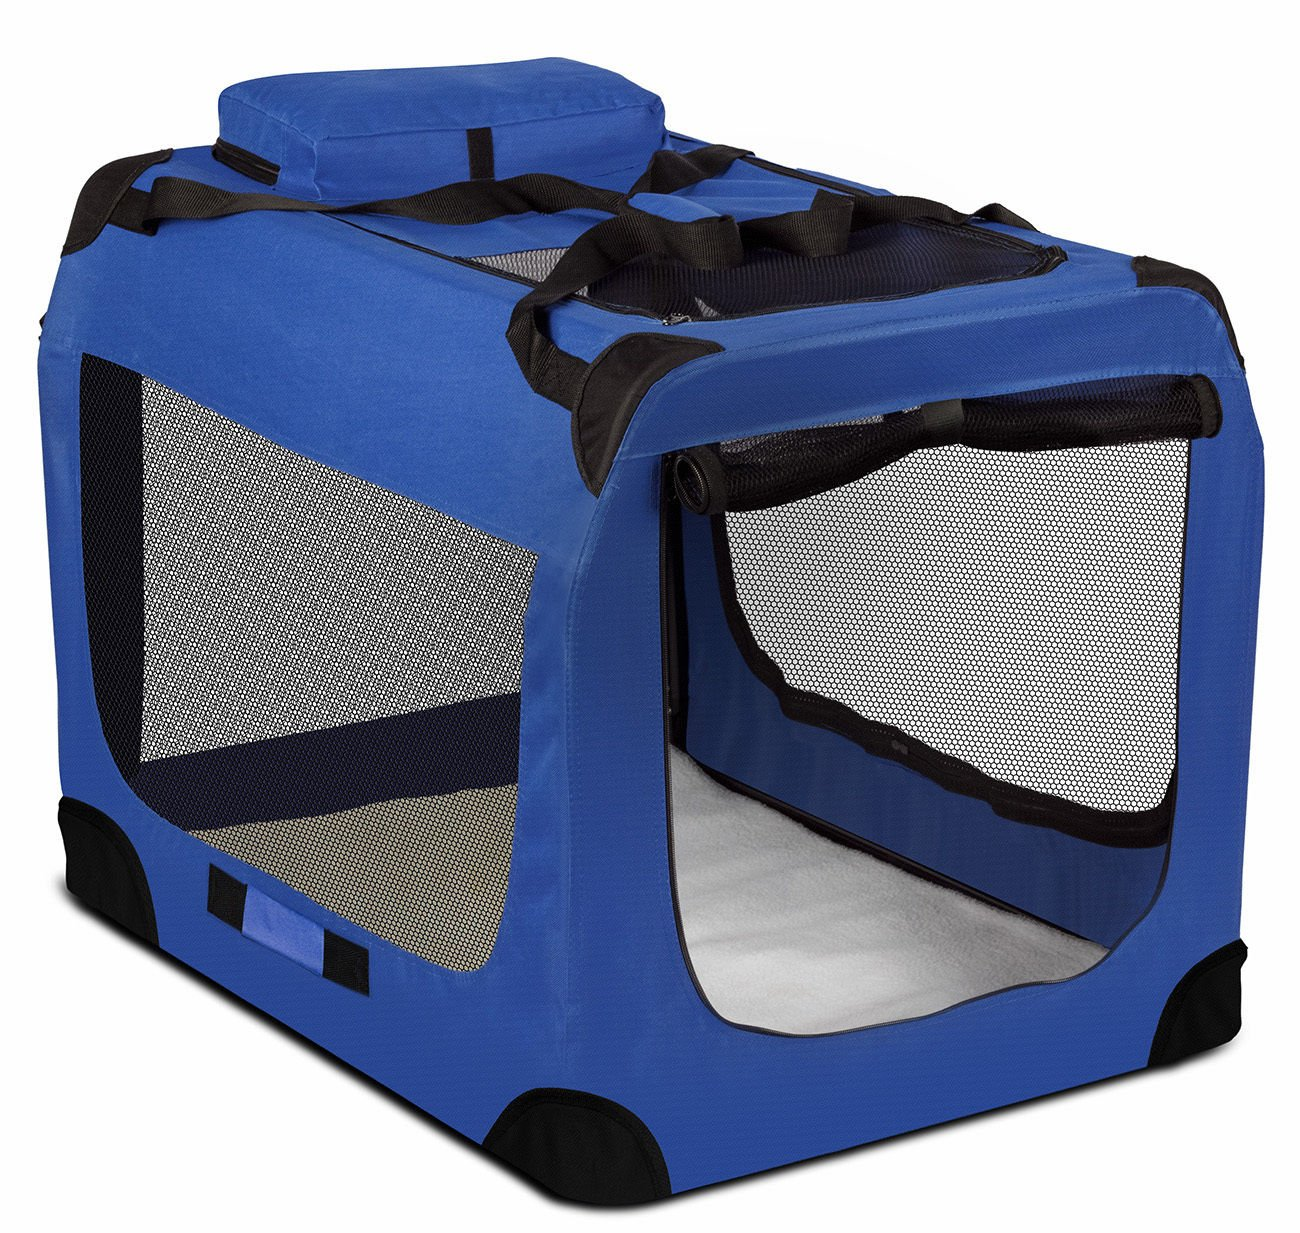 "Blue Portable Dog Crate Pet Carrier Foldable Kennel Soft Sided Cage 40""x27''x28'' Size 3XL"